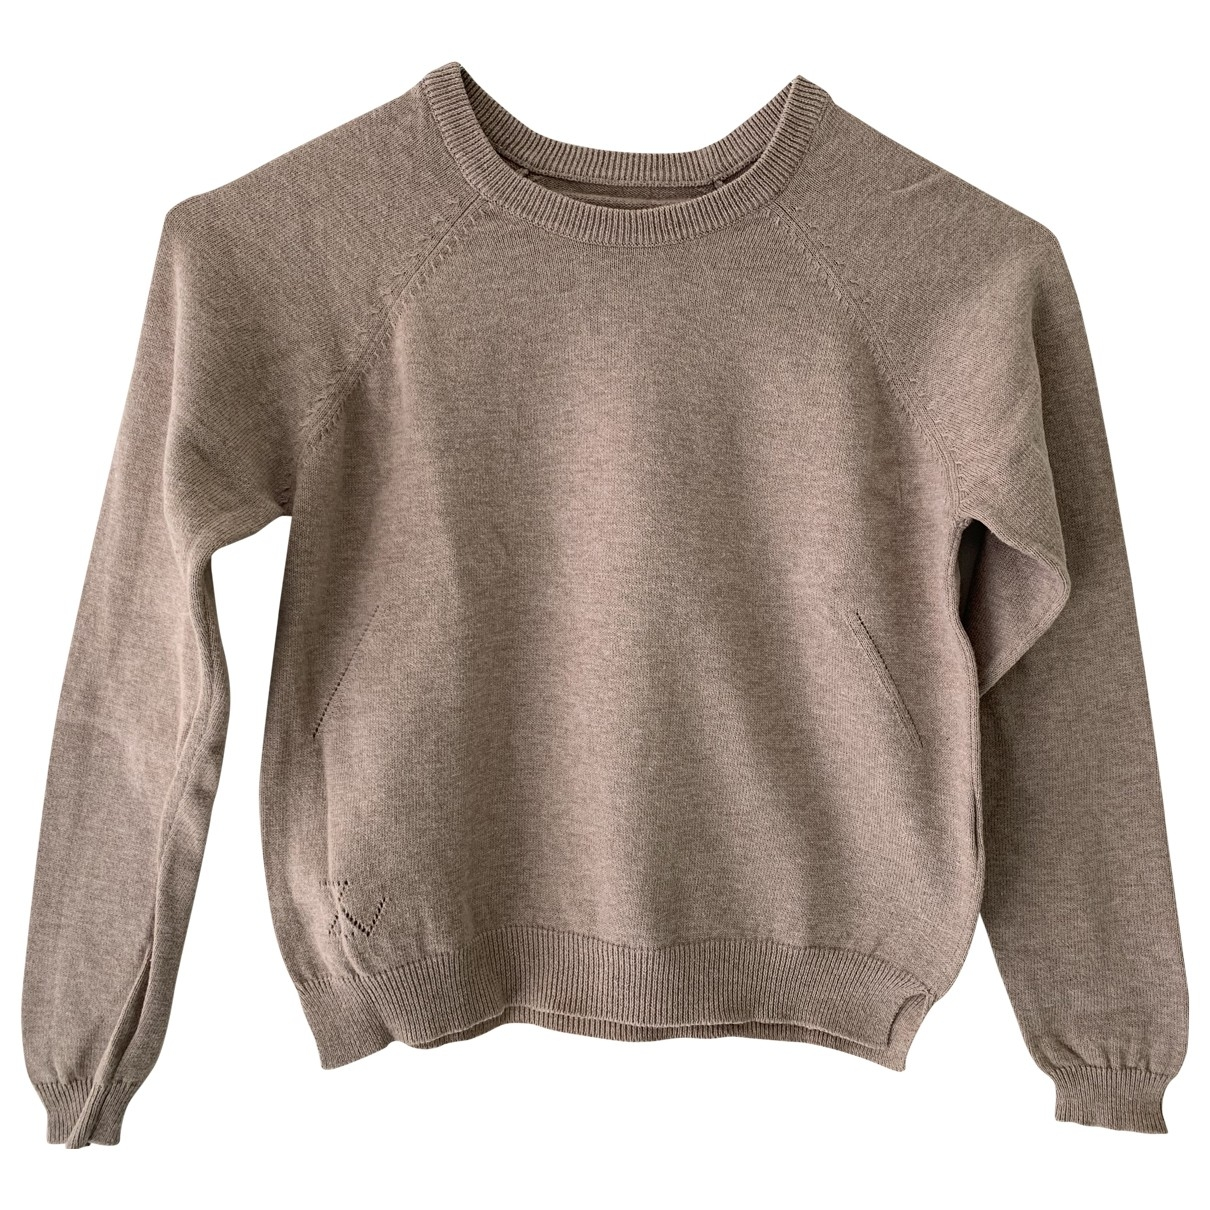 Zadig & Voltaire \N Beige Cotton Knitwear for Kids 5 years - up to 108cm FR